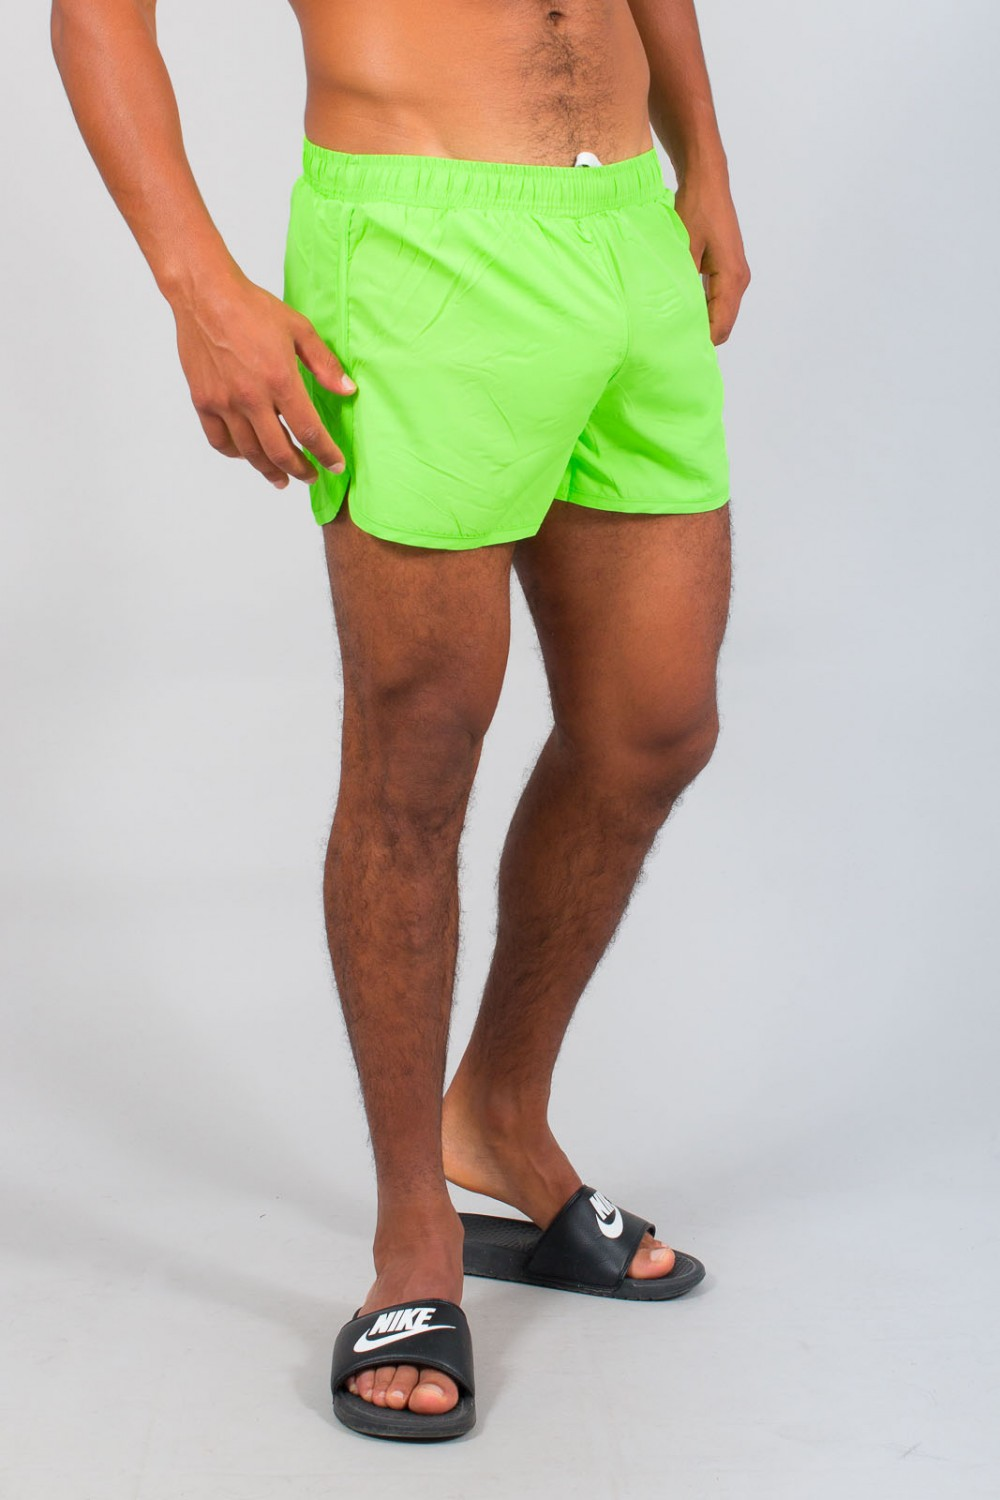 hot-vente plus récent grand assortiment section spéciale short de bain homme vert fluo 624